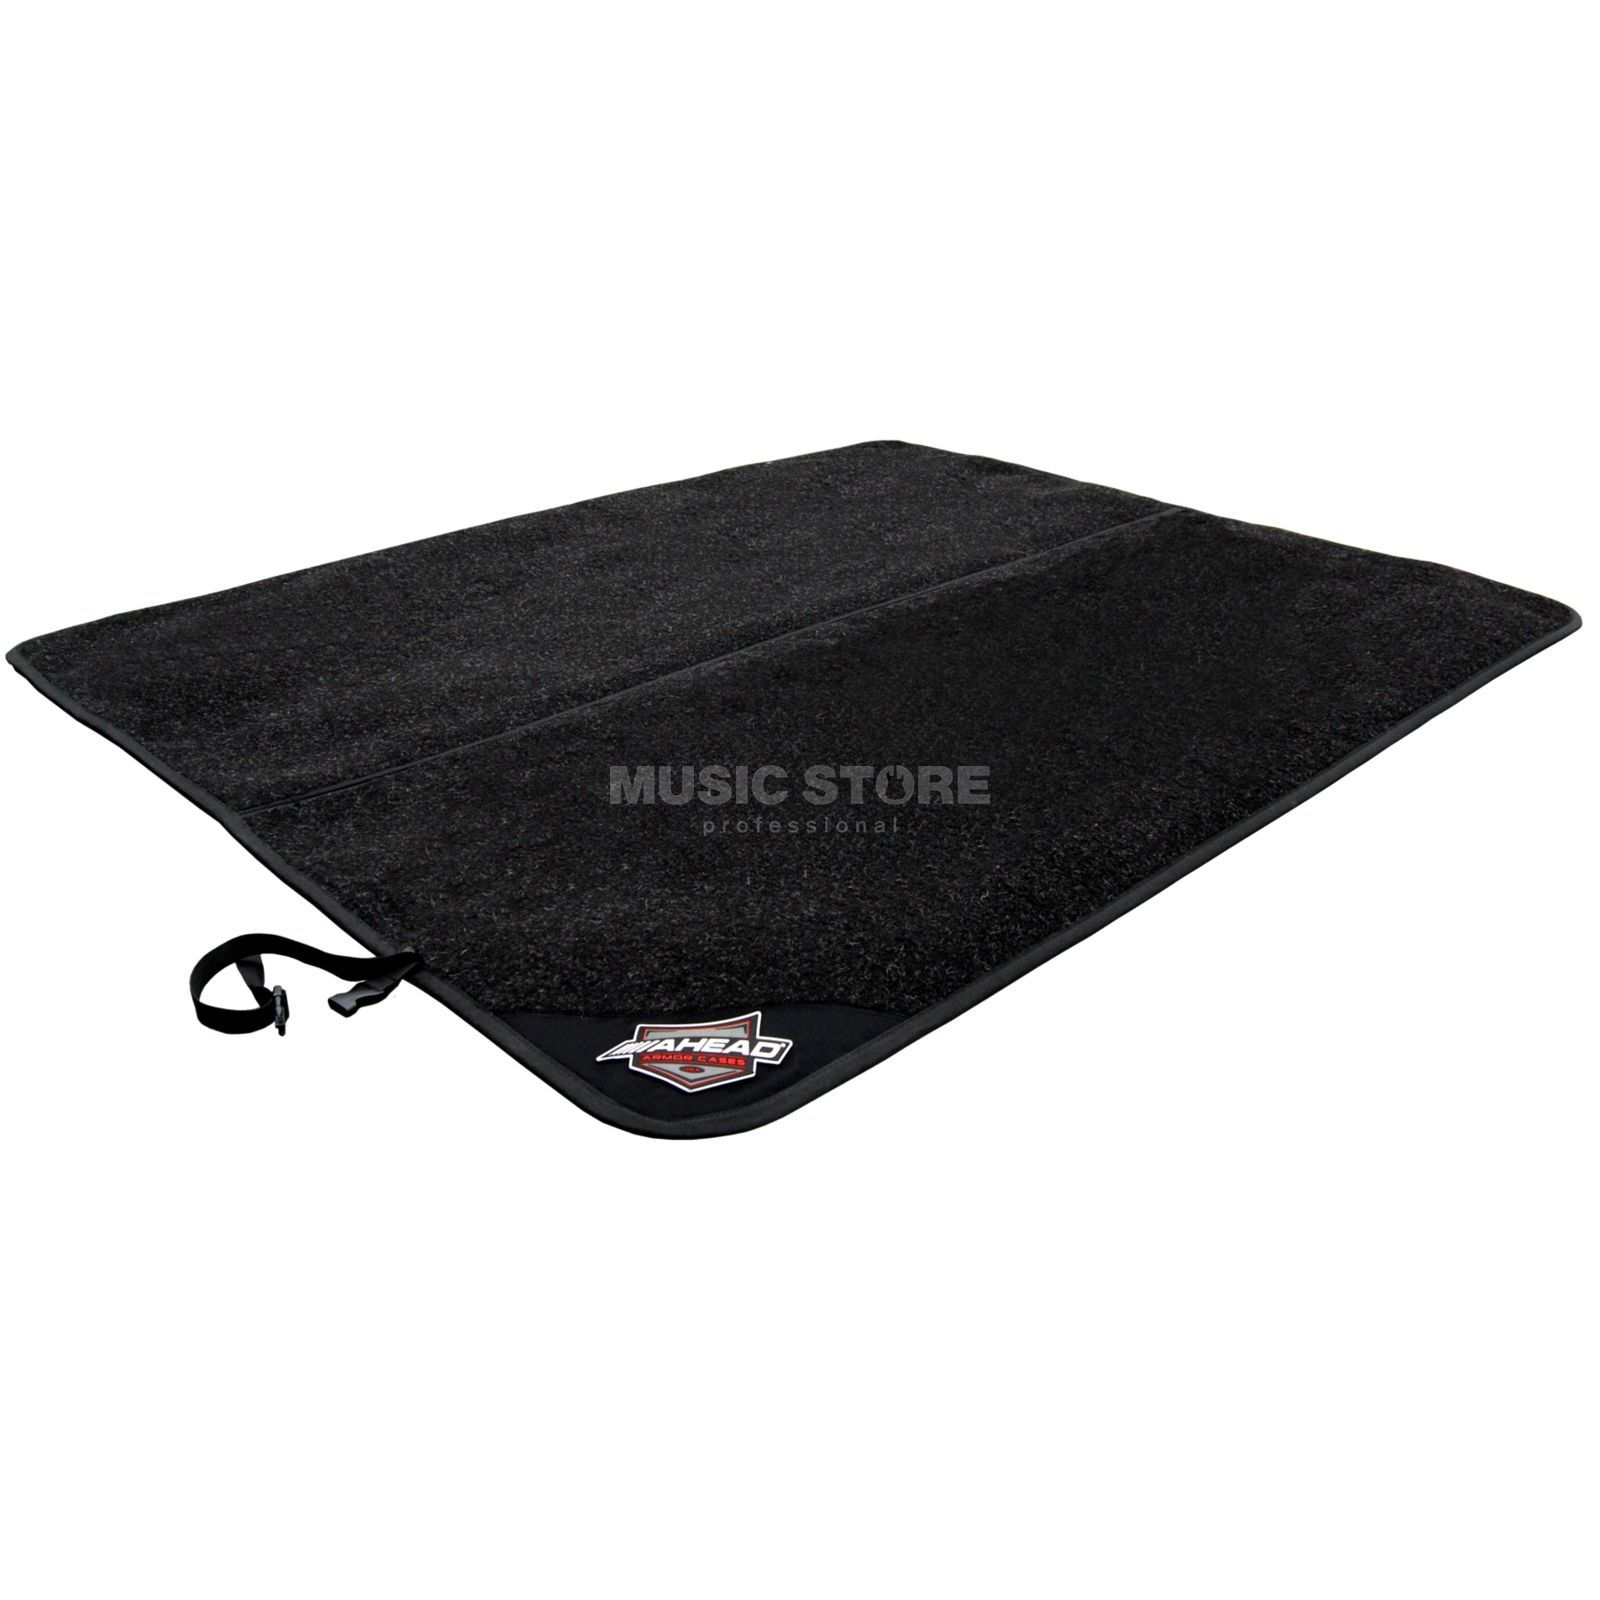 Ahead Armor Cases Drum Mat 1,60 x 2,00 m, foldable, AA9020 Product Image